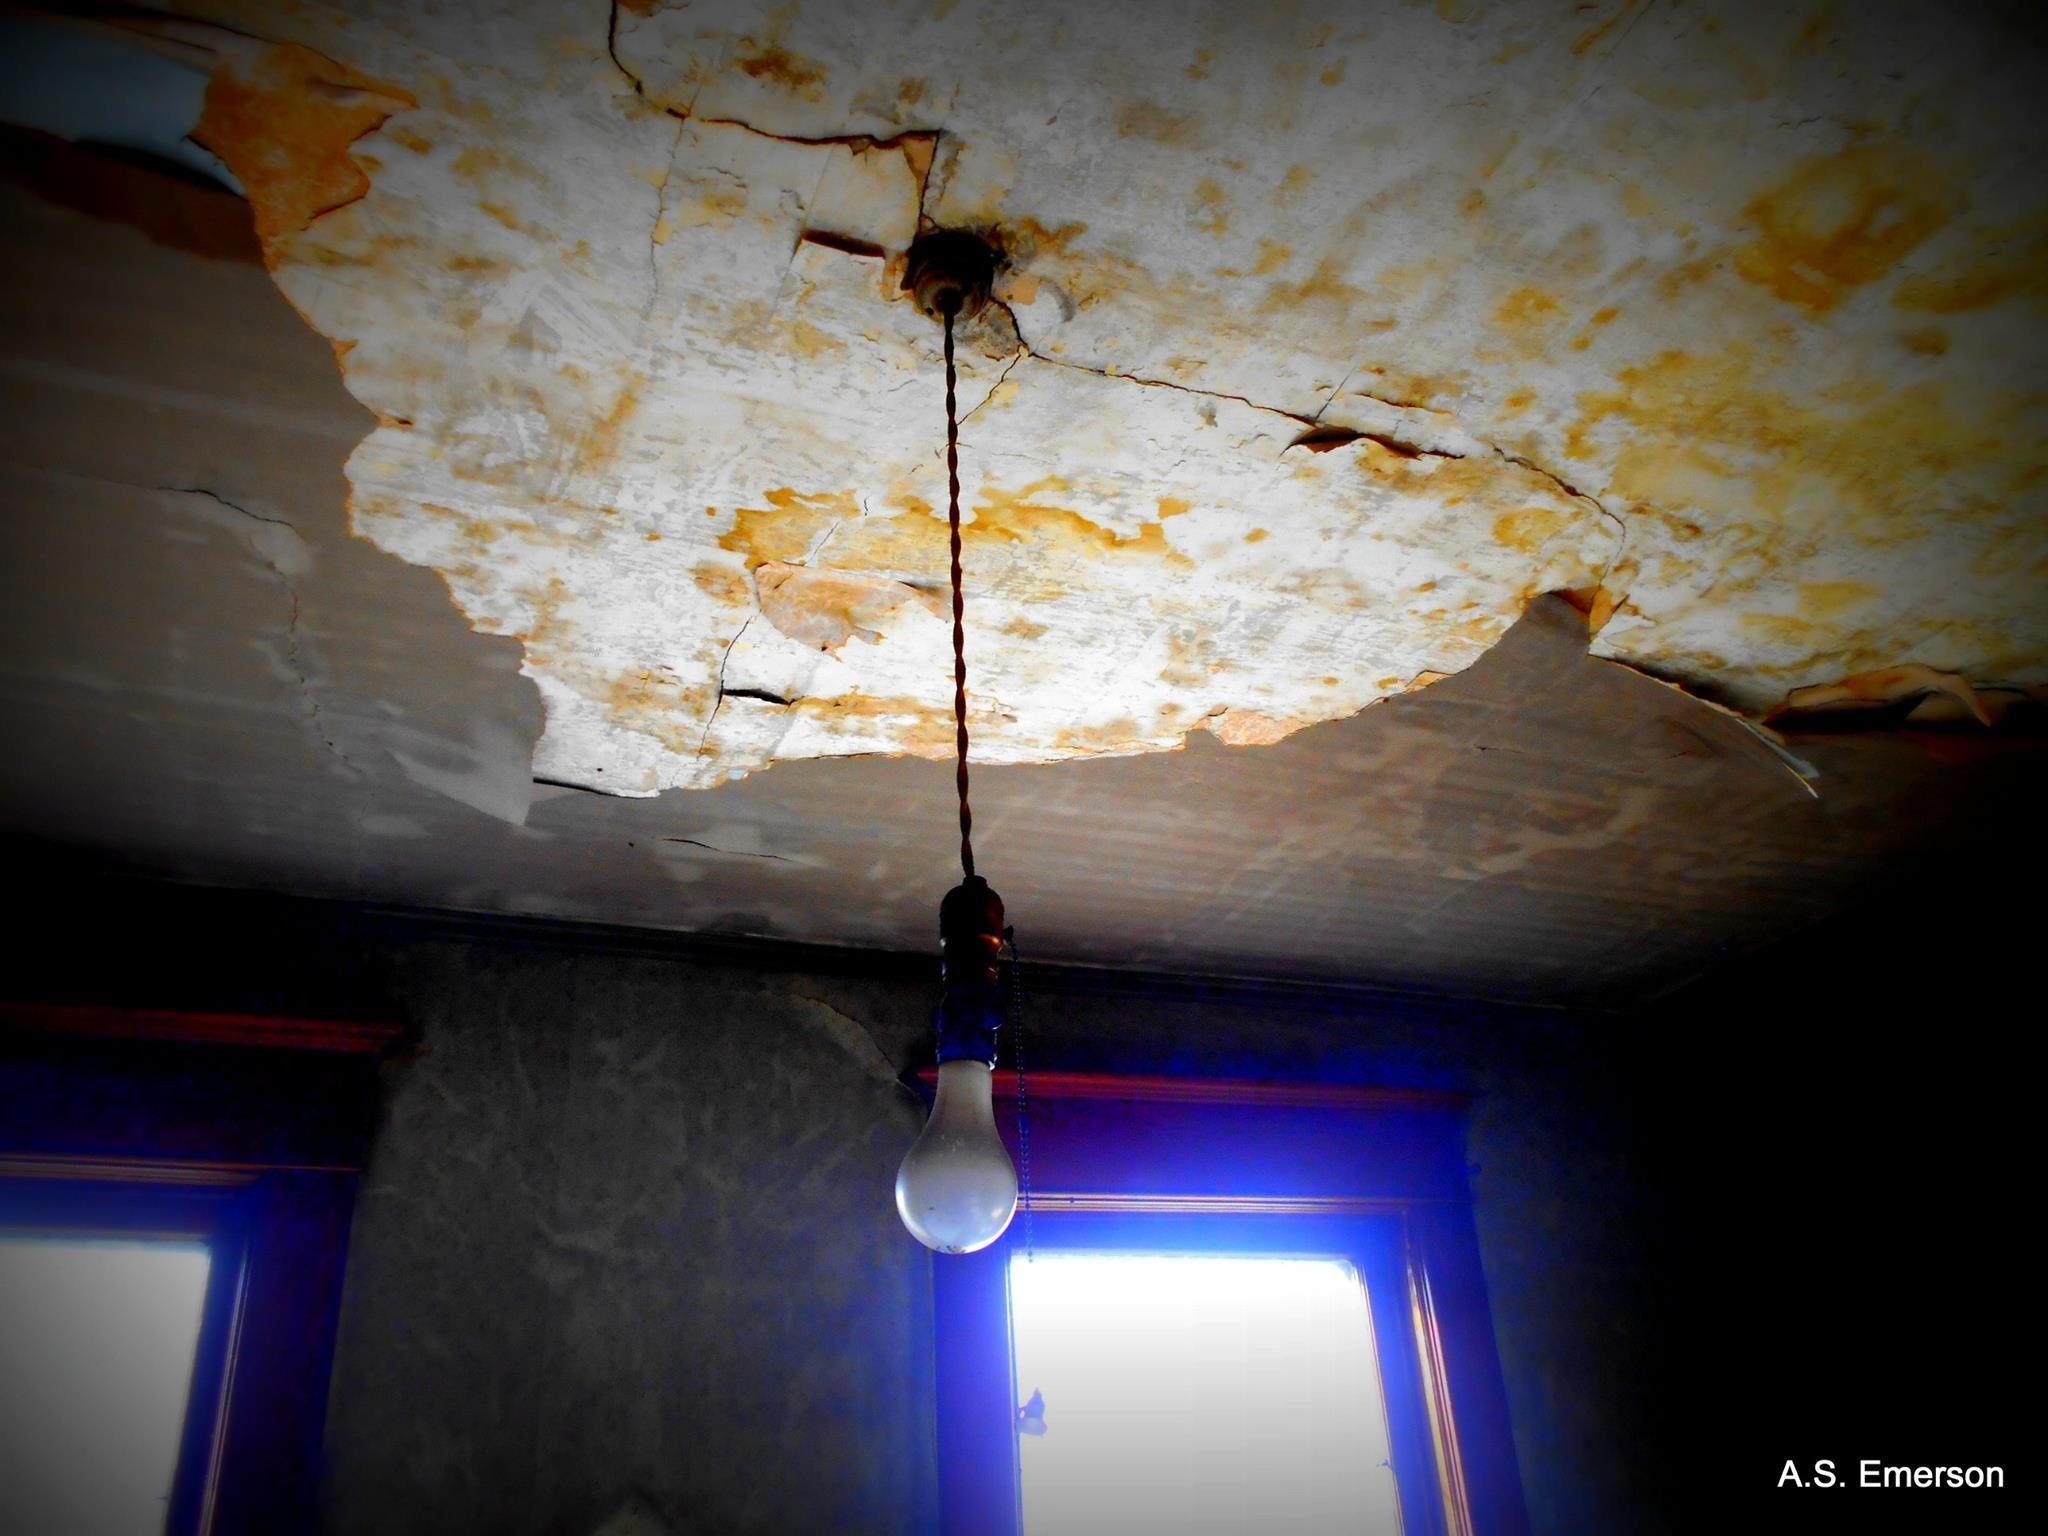 Hanging Light Bulb in Abandoned House by Amy Emerson